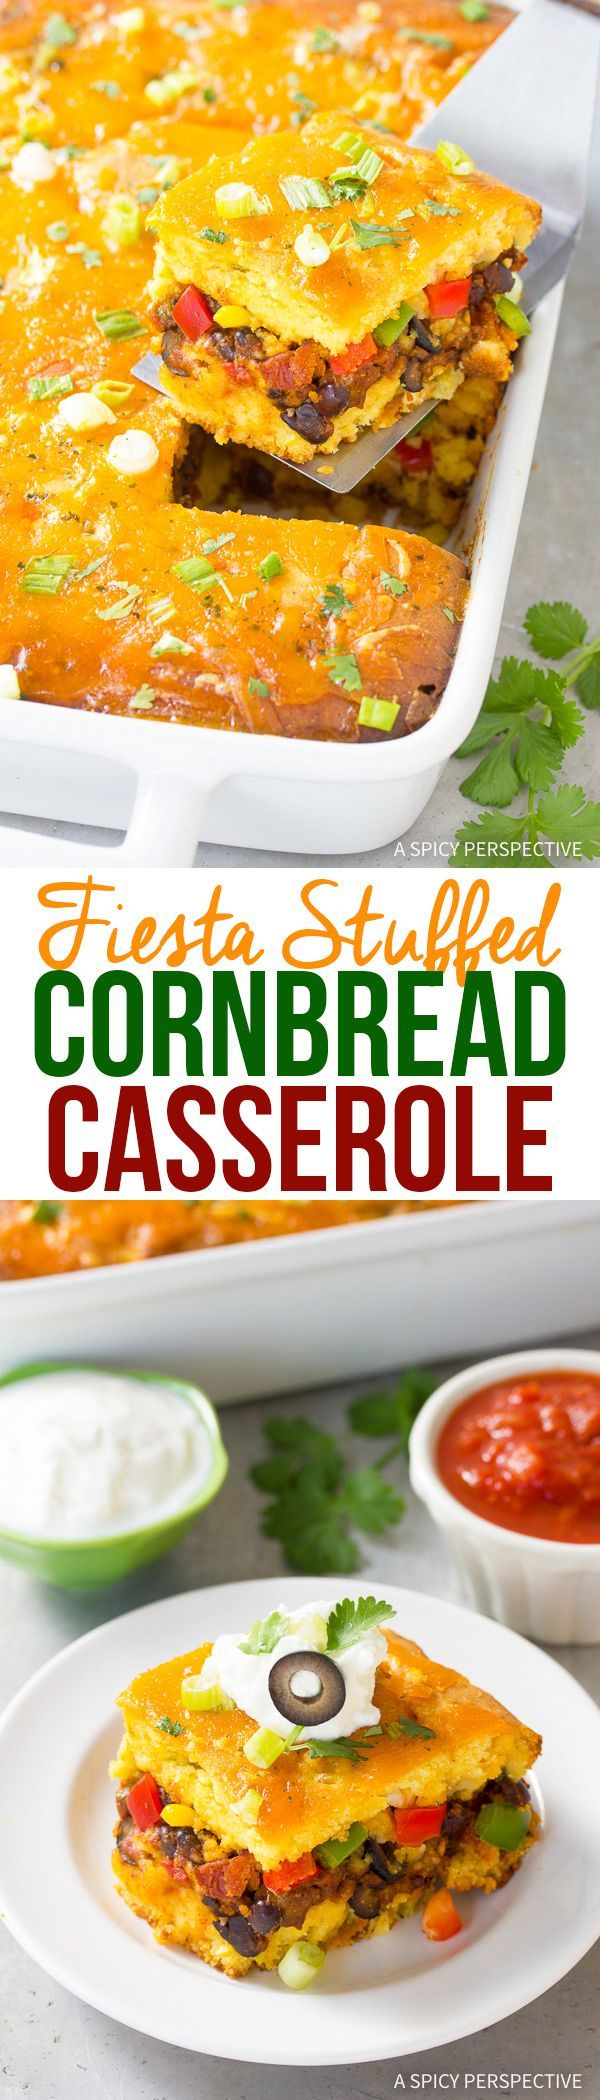 Stuffed Fiesta Cornbread Casserole Recipe - A loaded mexican cornbread with colorful layers and tons of flavor! It's a side dish and a meal, all in one. via @spicyperspectiv